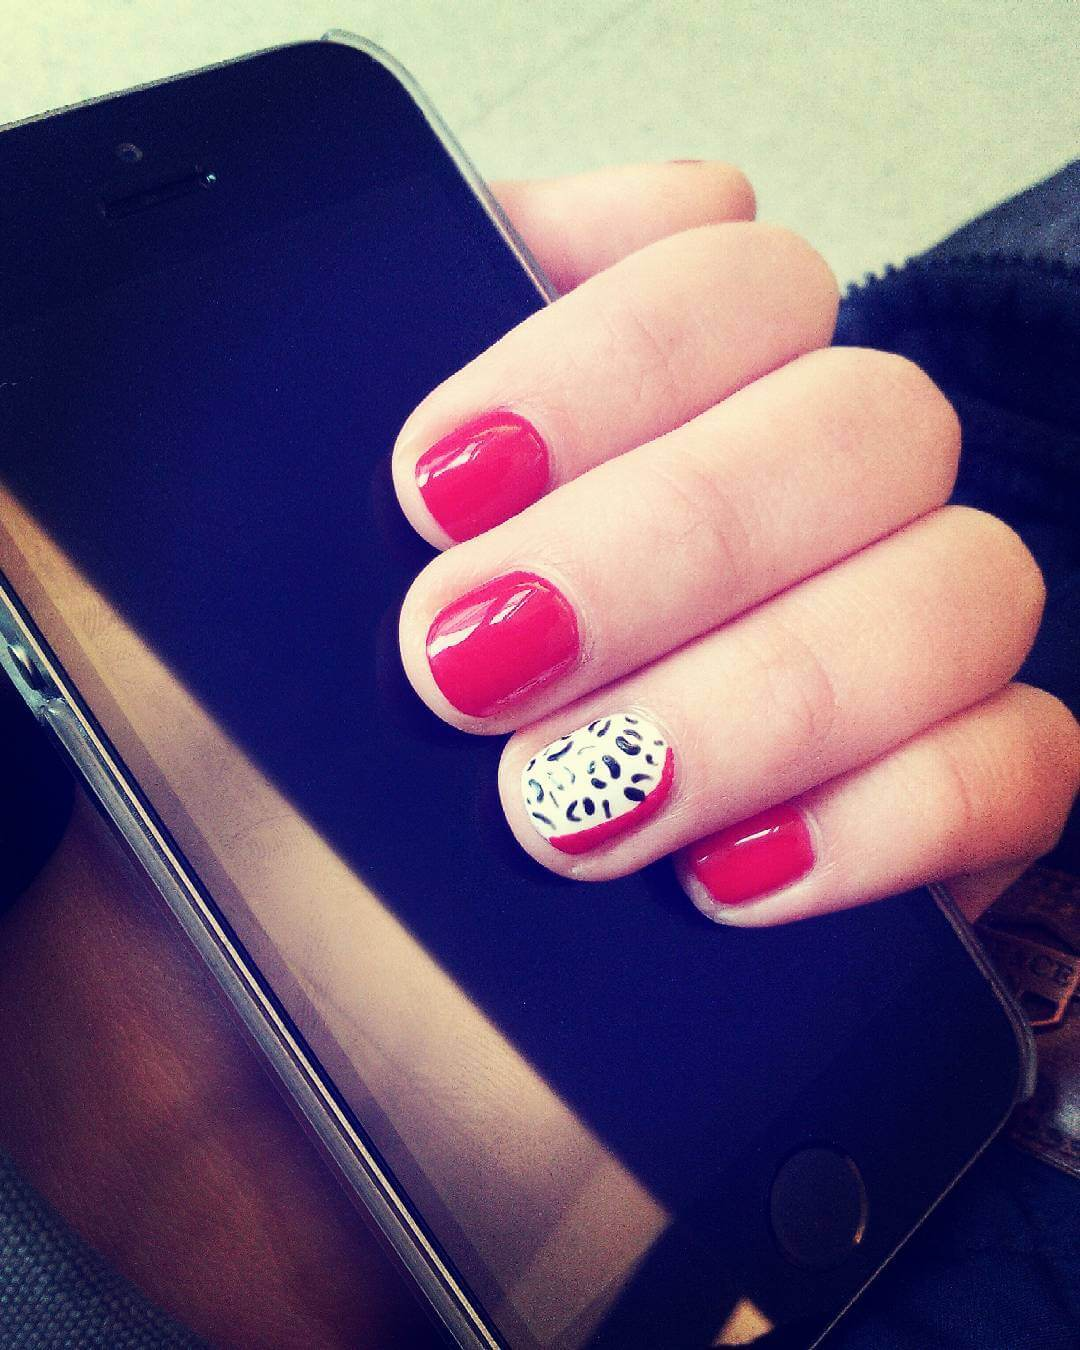 red loepard nail art design 1